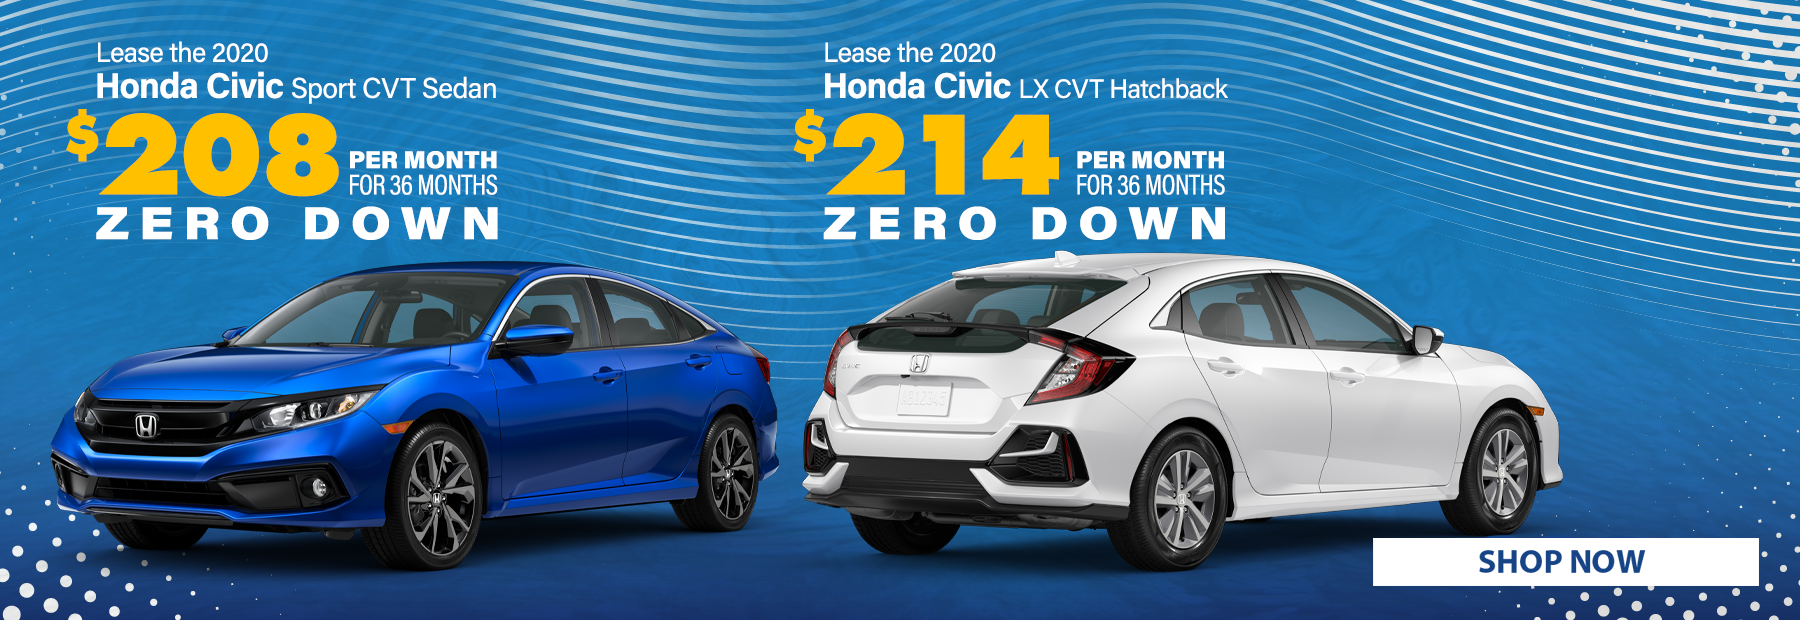 Lease a 2020 Honda Civic Sport CVT Sedan or 2020 Honda Civic LX CVT Hatchback